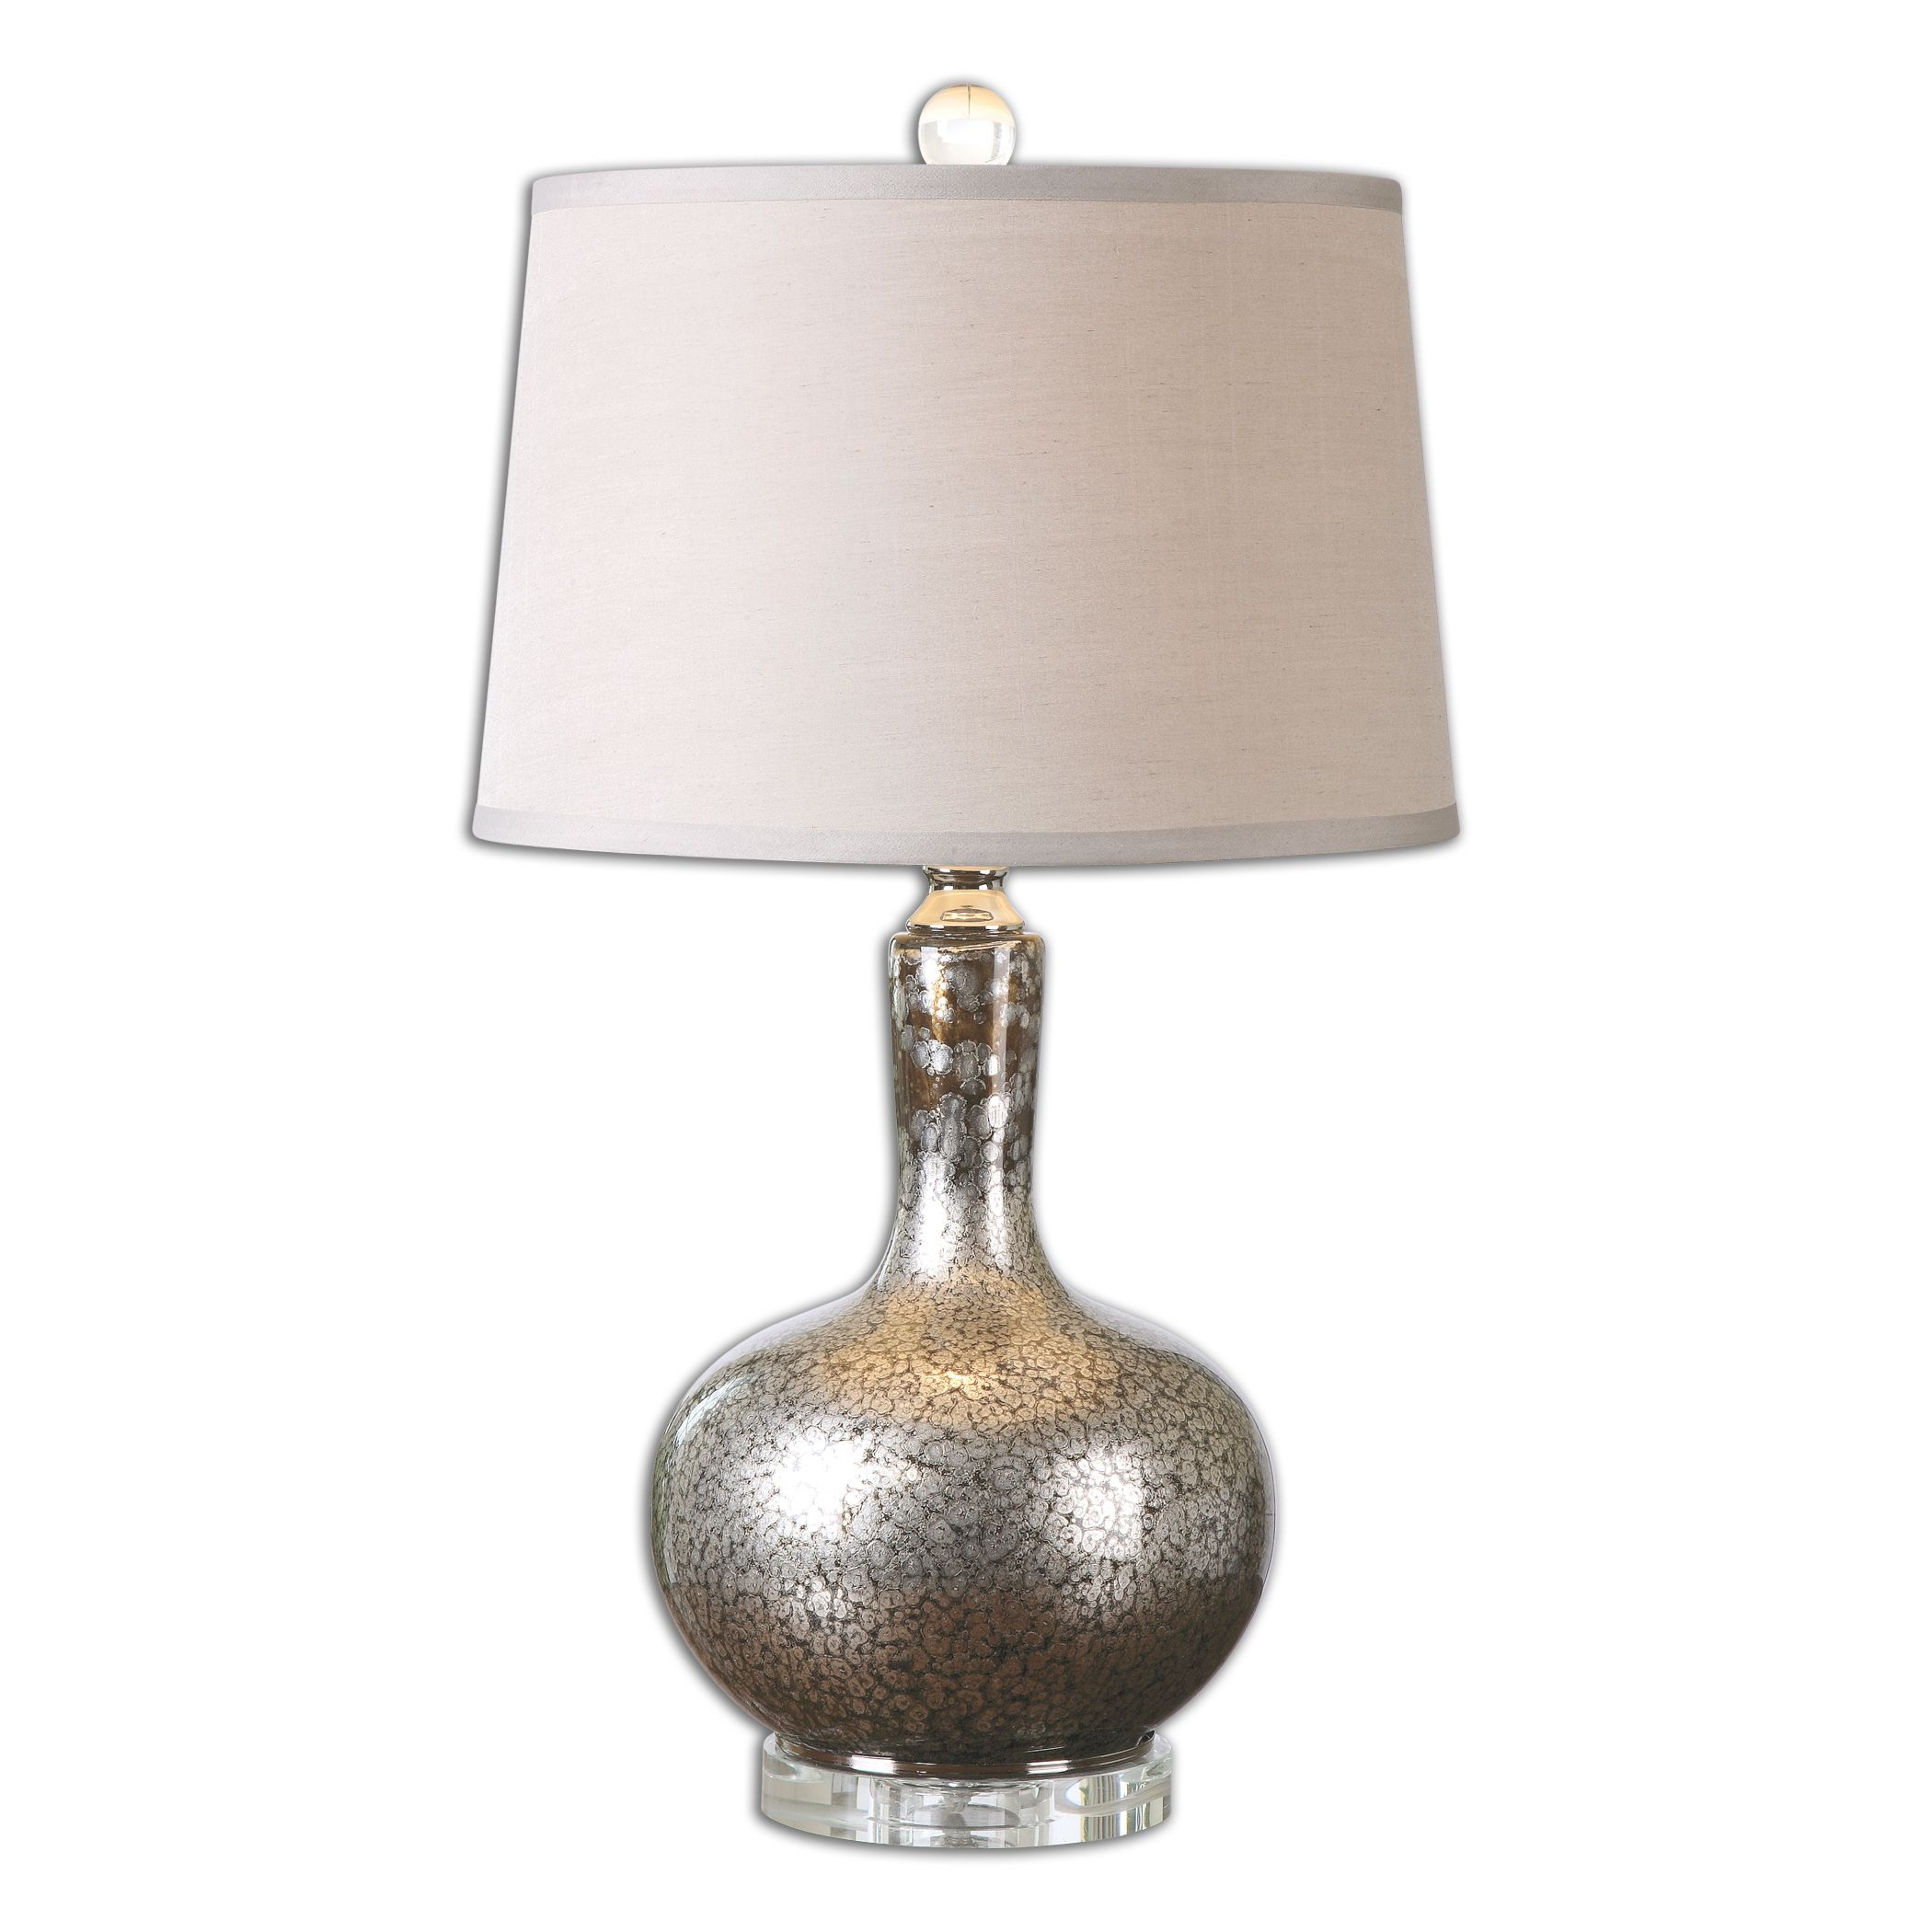 Uttermost-26157-Aemilius - 1 Light Table Lamp  Dark Bronze/Polished Nickel Plated/Crystal Finish with Mottled Mercury Silver Glass with Silken Beige Linen Fabric Shade